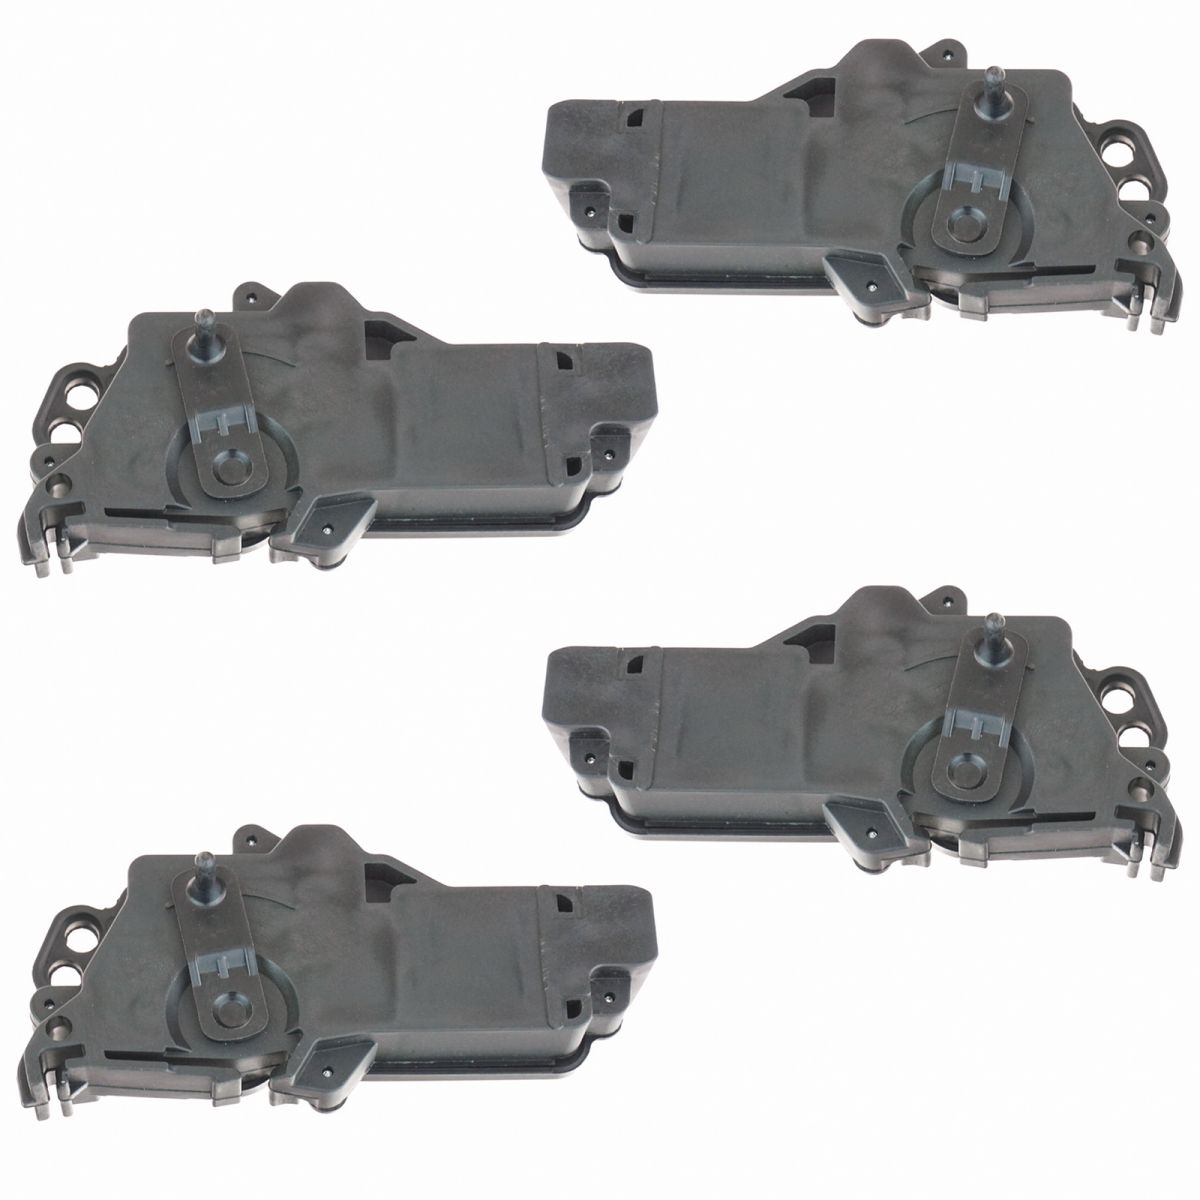 hight resolution of power door lock actuators kit set of 4 for ford f150 f250 f350 excursion mercury